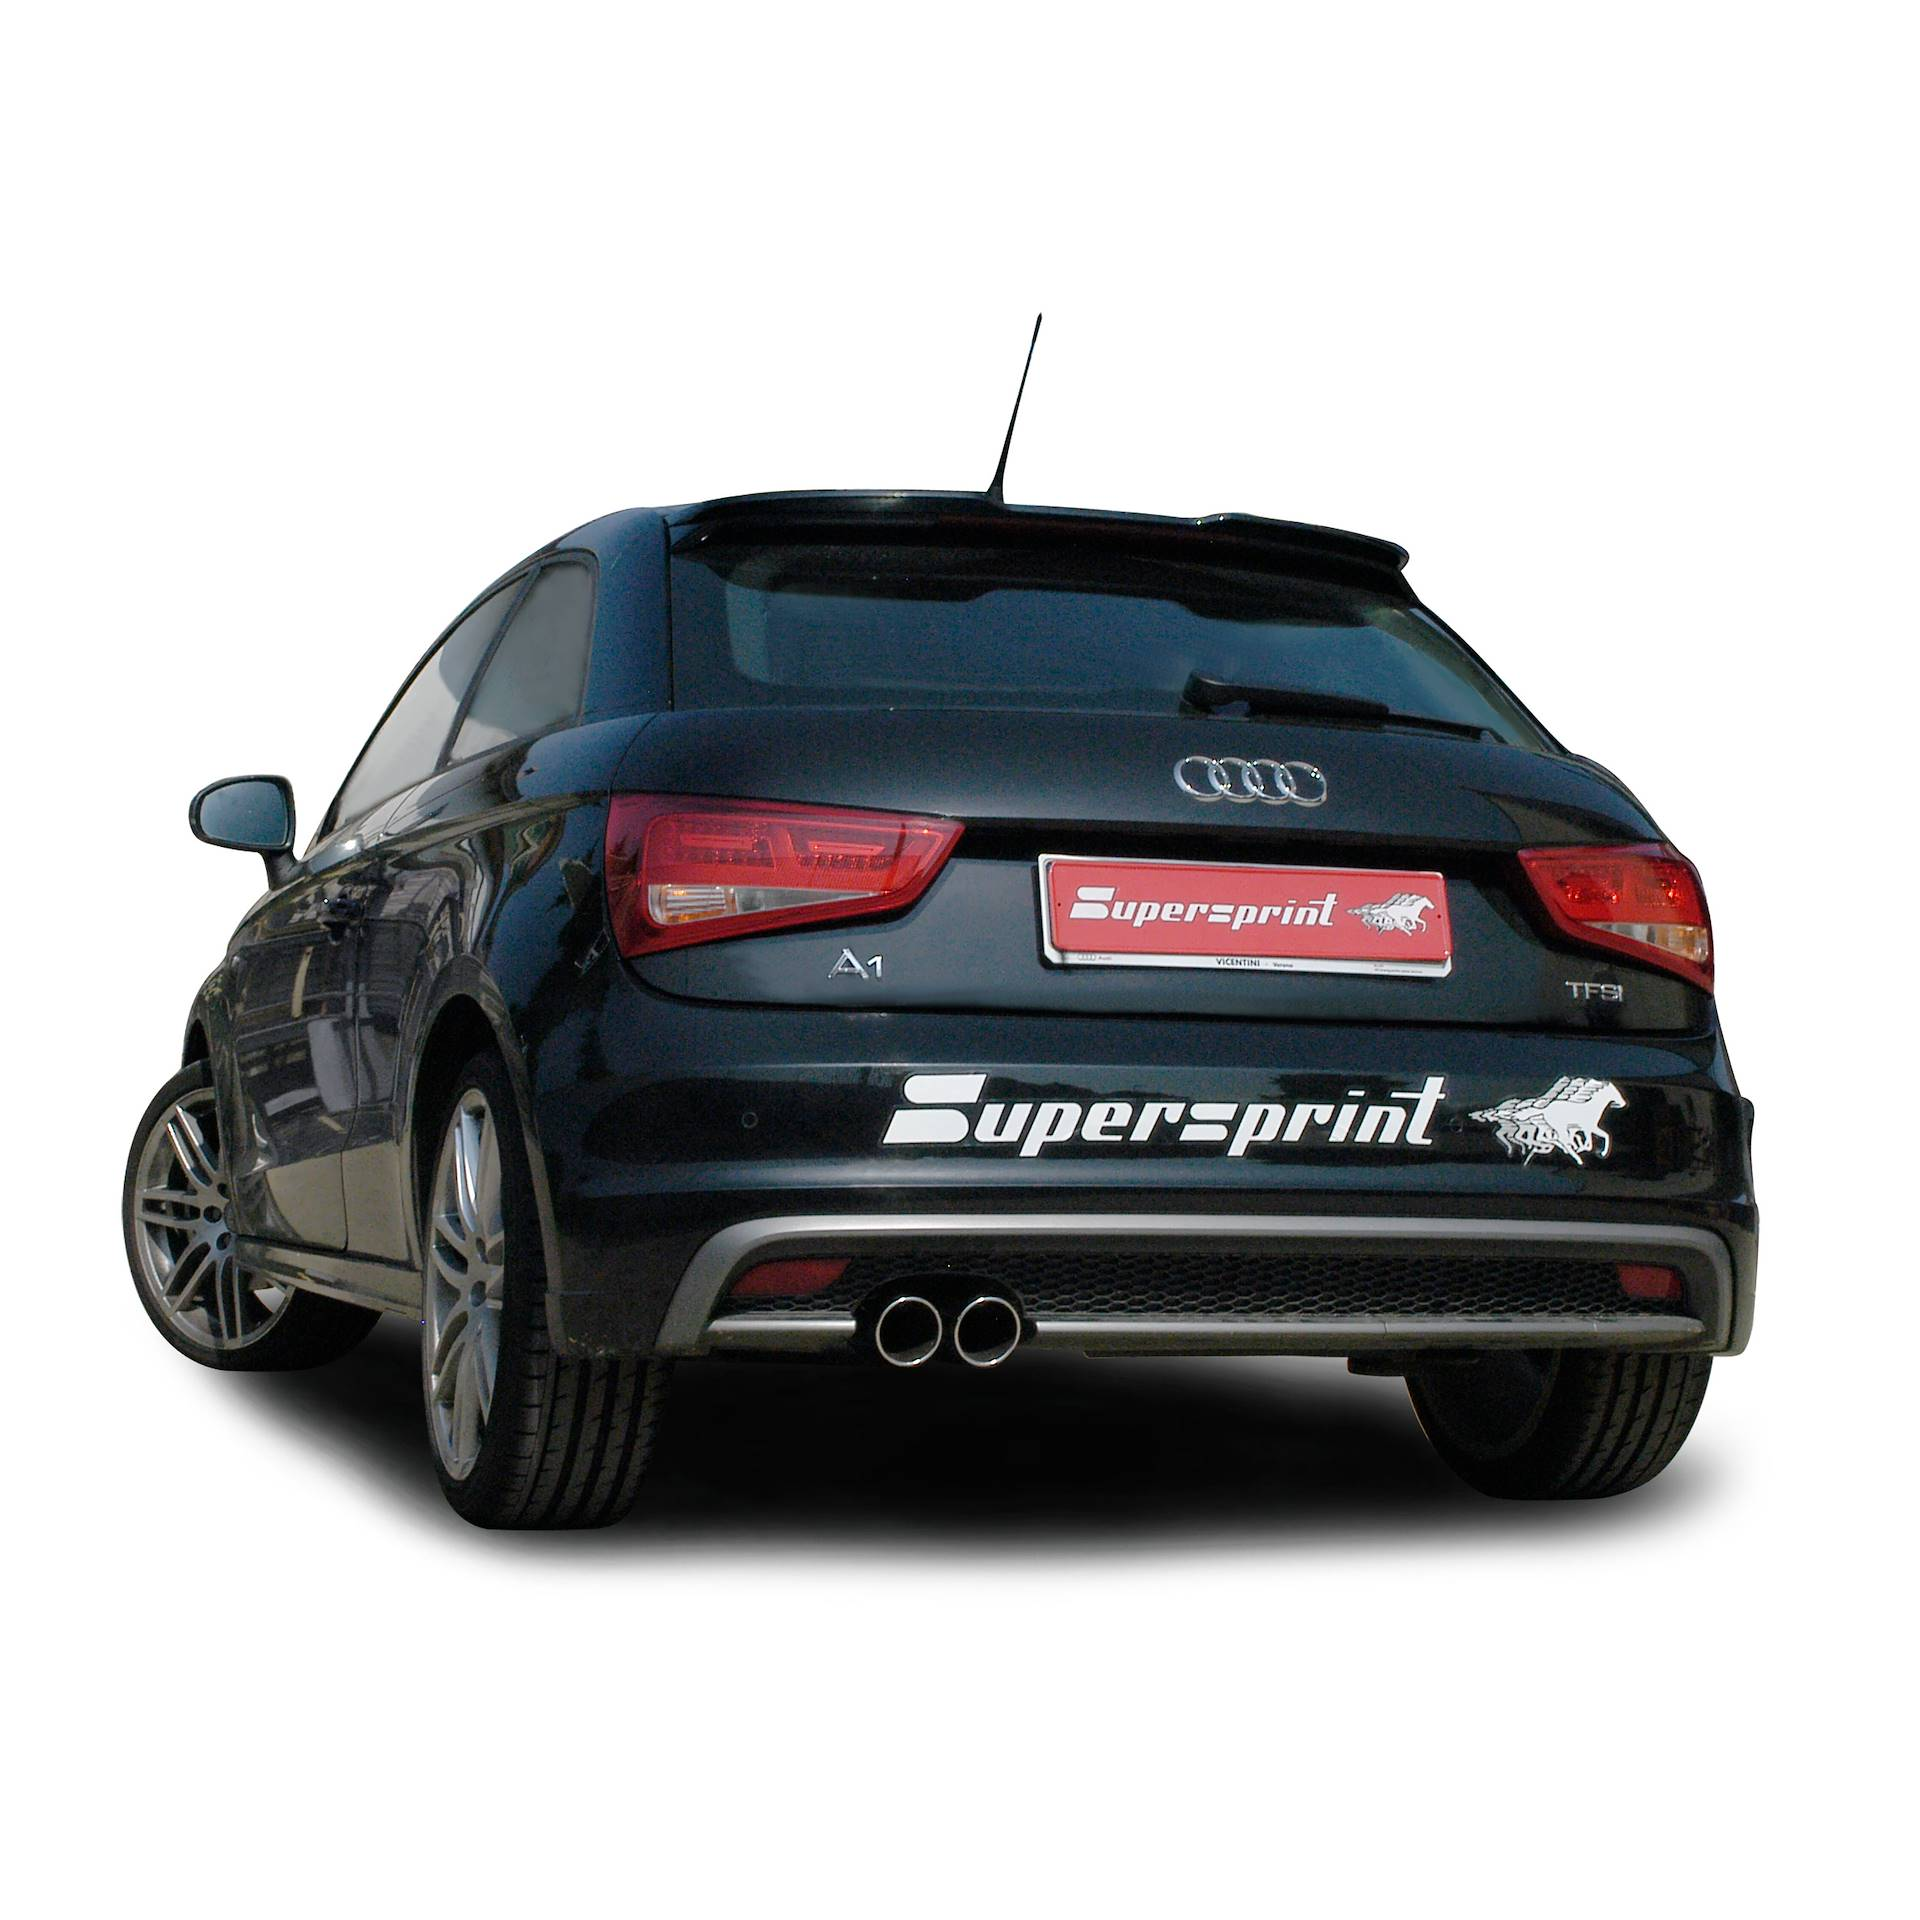 audi a1 1 4 tfsi 3 porte sportback 185 hp 2010 2014 audi impianti di scarico. Black Bedroom Furniture Sets. Home Design Ideas